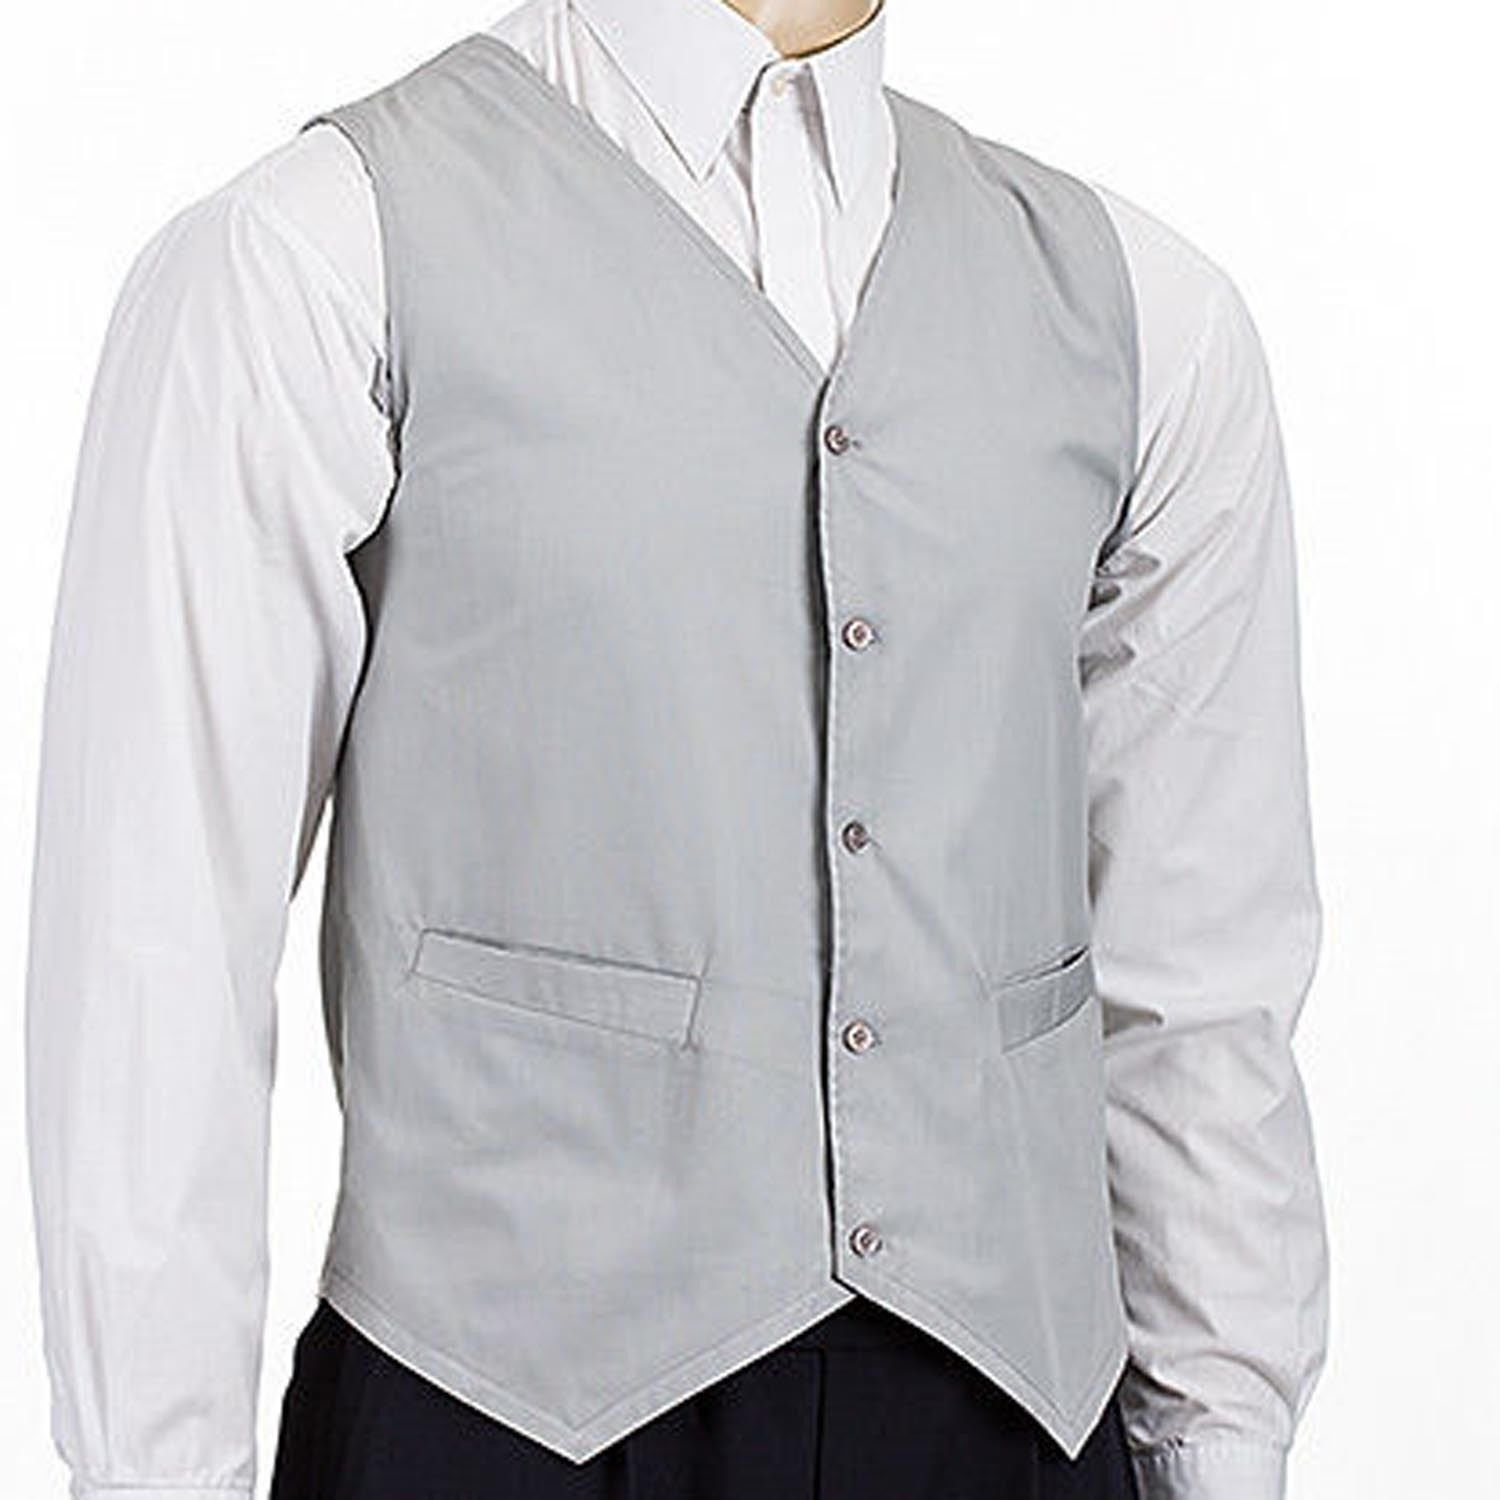 Hospitality Waistcoat Perfect Waiter Waitress Bar Restaurant Staff